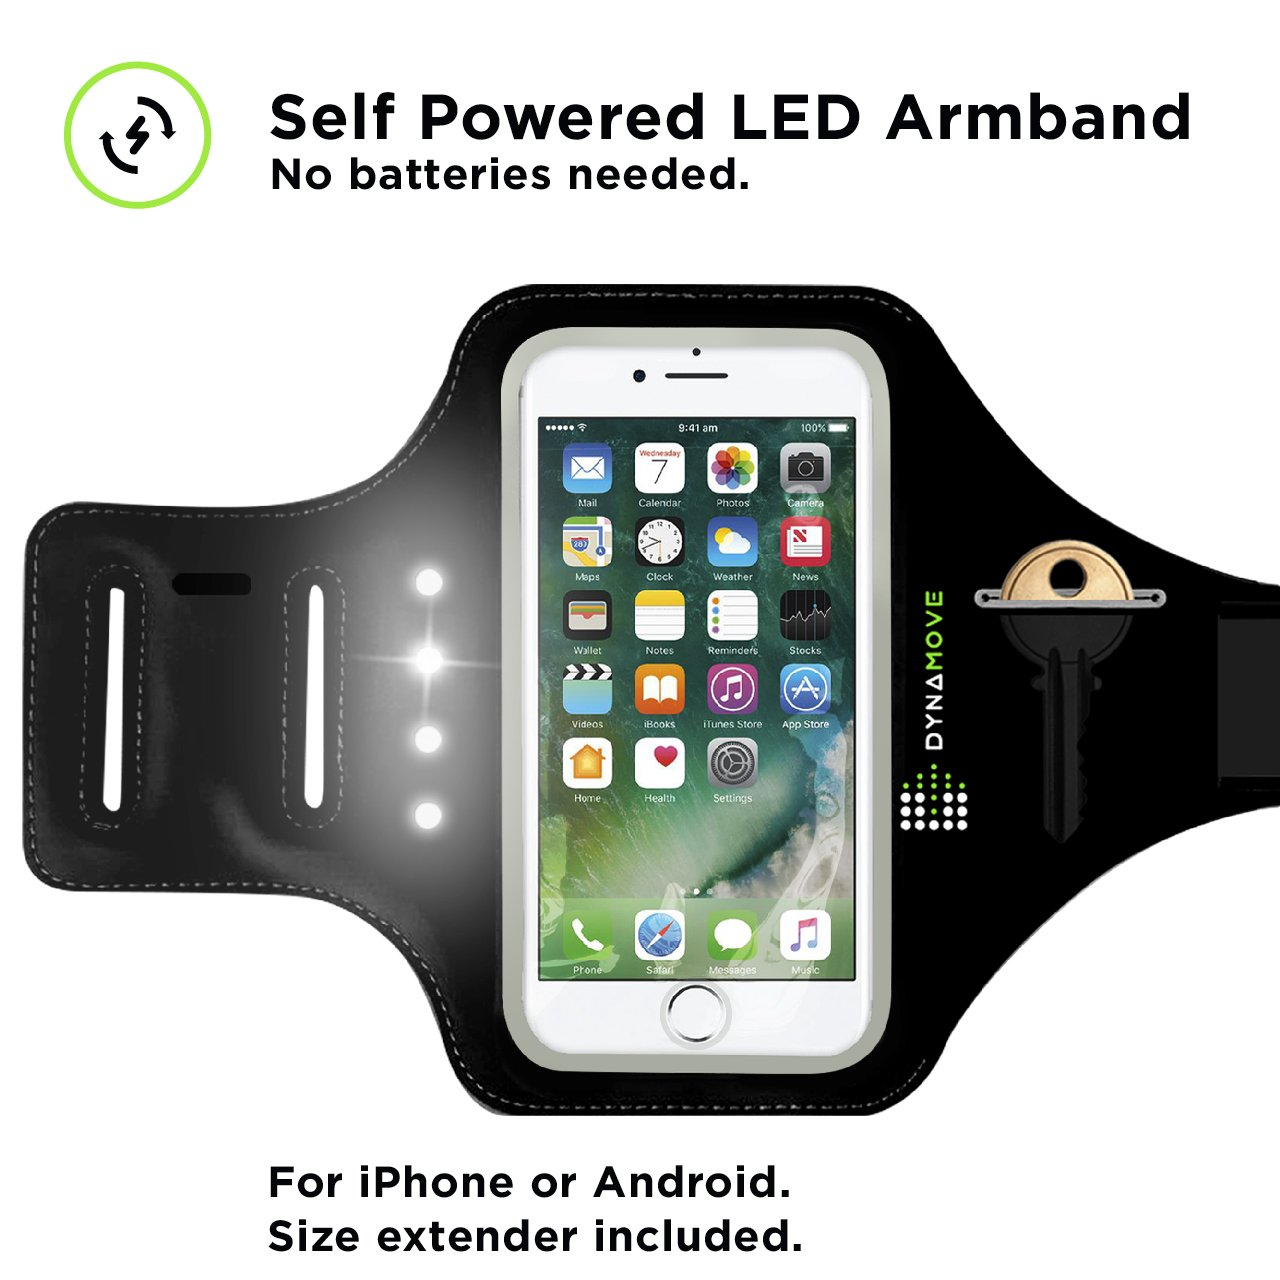 Running Armband for Iphone 6, 6S, 7 or Android: Dynamove Motion Powered LED with Fingerprint Touch ID Support, Key Holder, Cash & Cards Slot + Size Extender included - No batteries needed